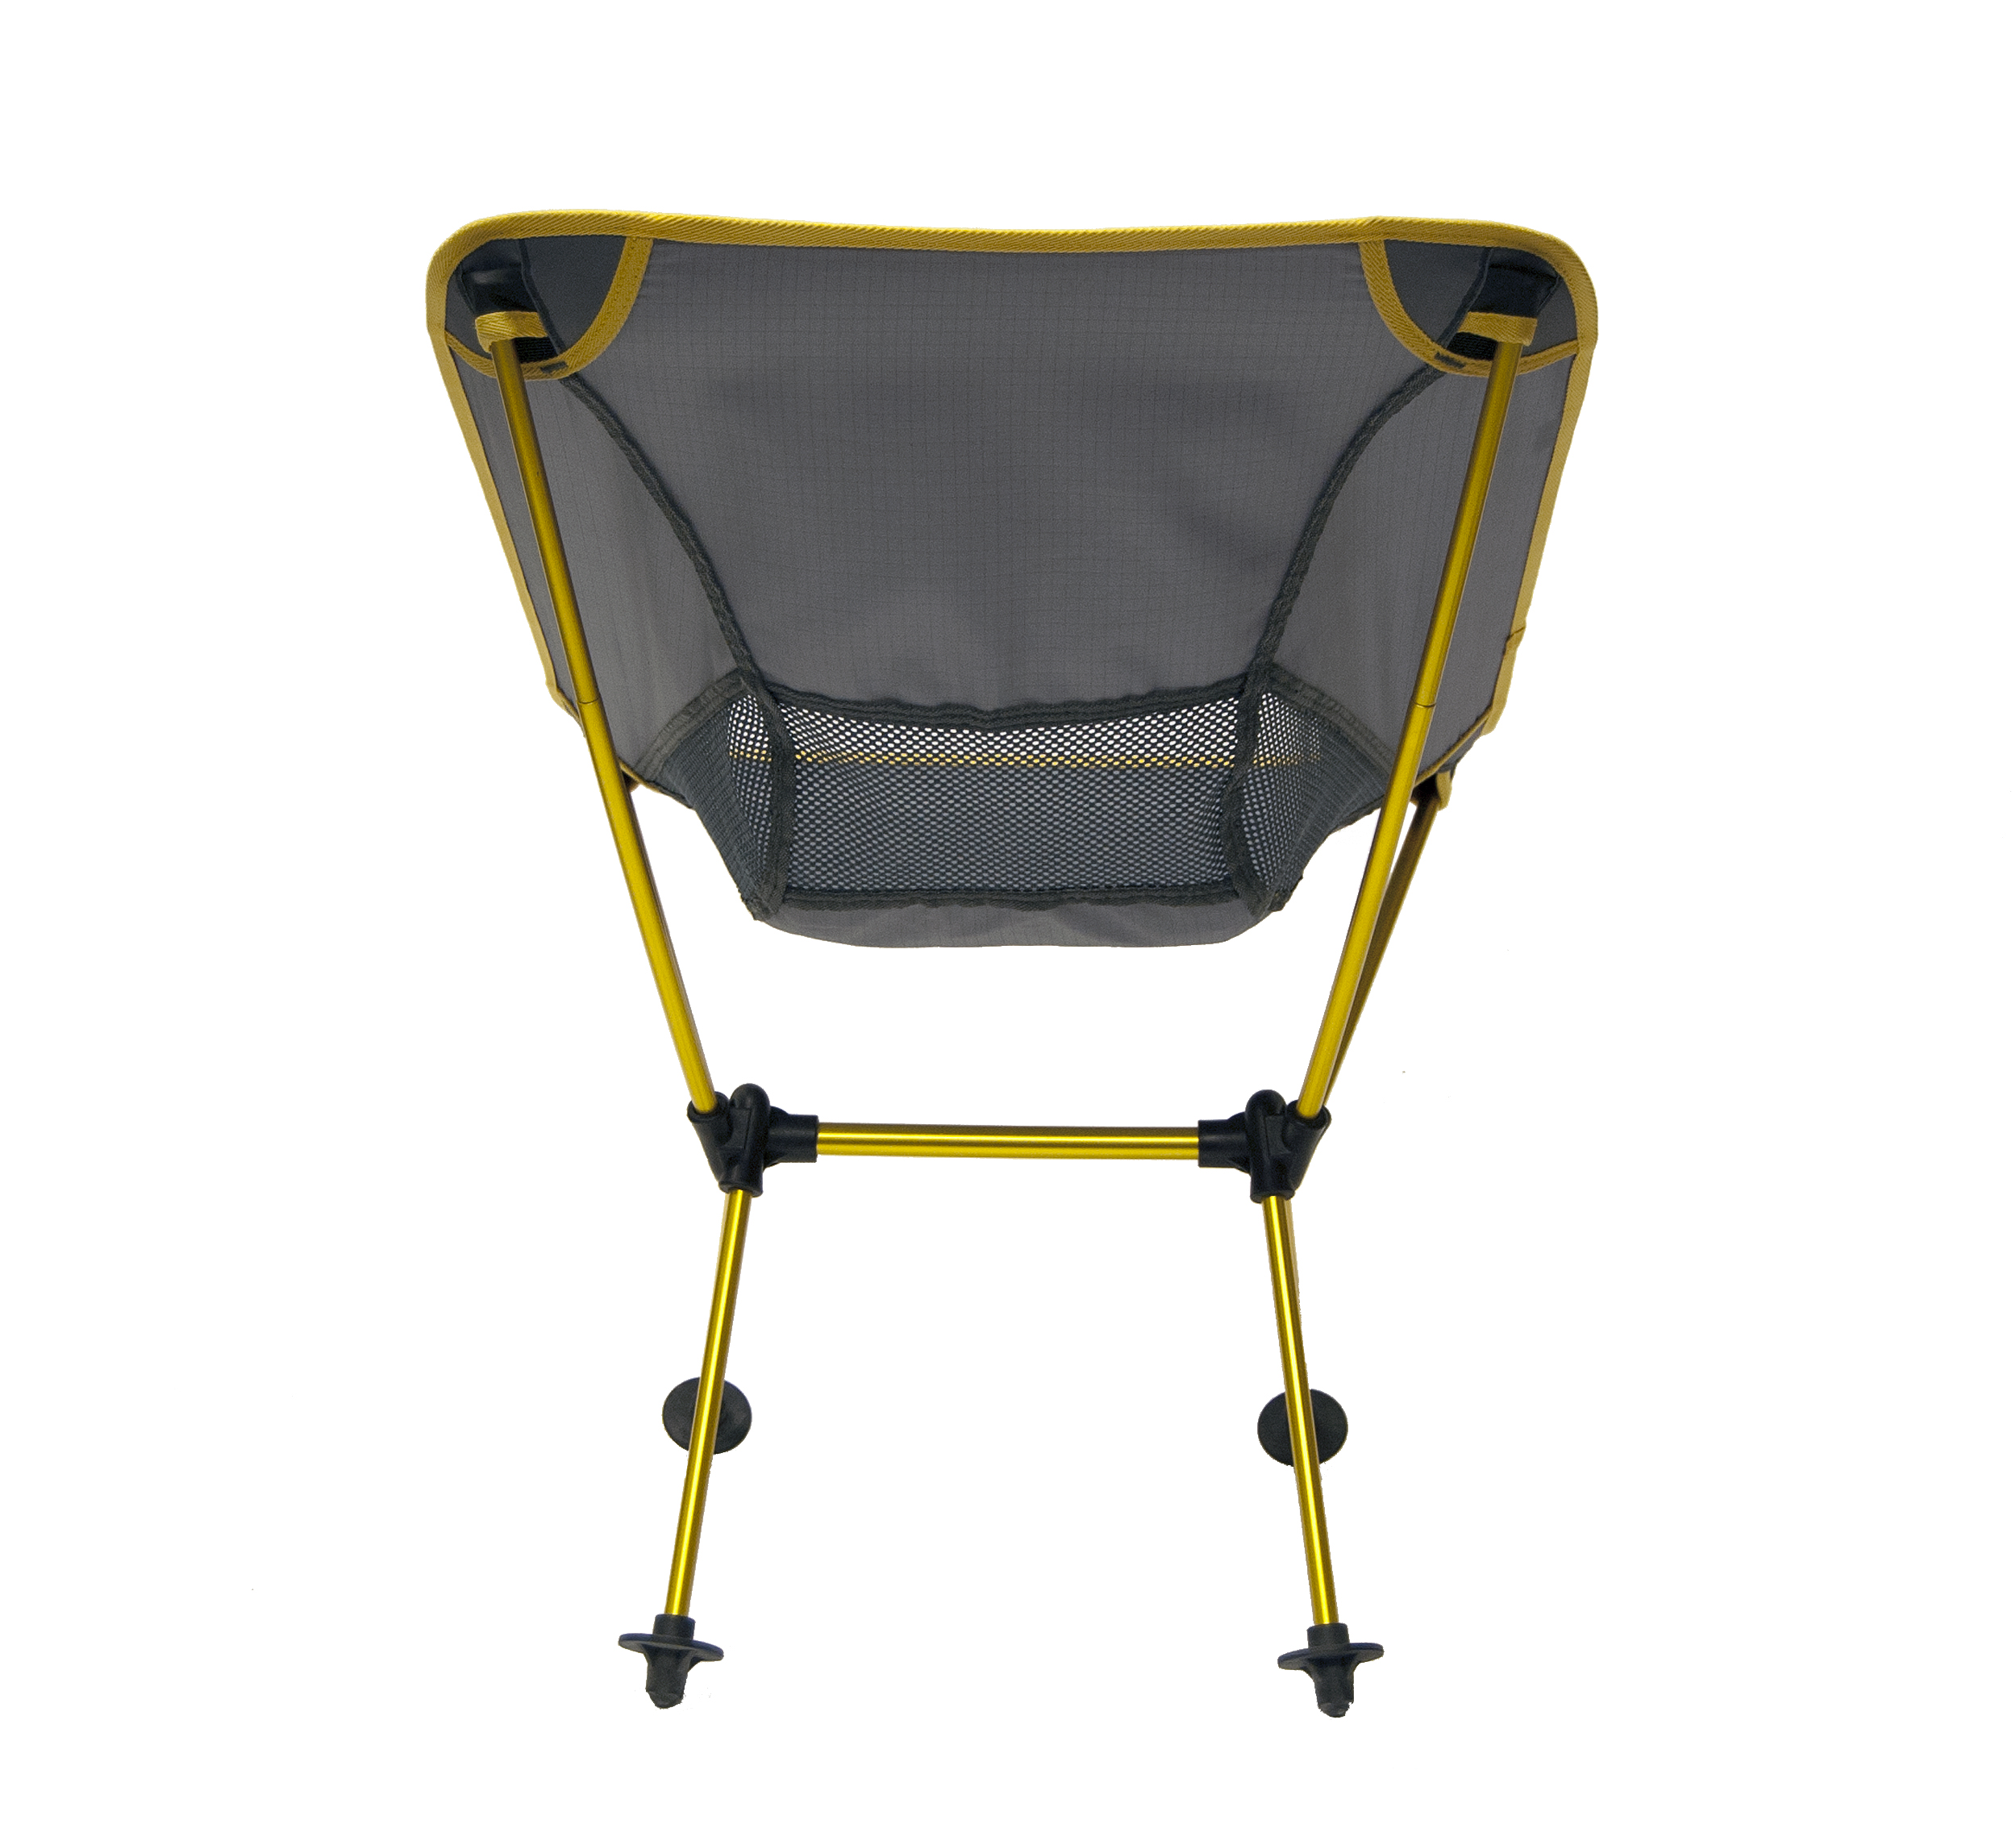 Big W Outdoor Table And Chairs Travel Chair Joey Camping Chair Yellow